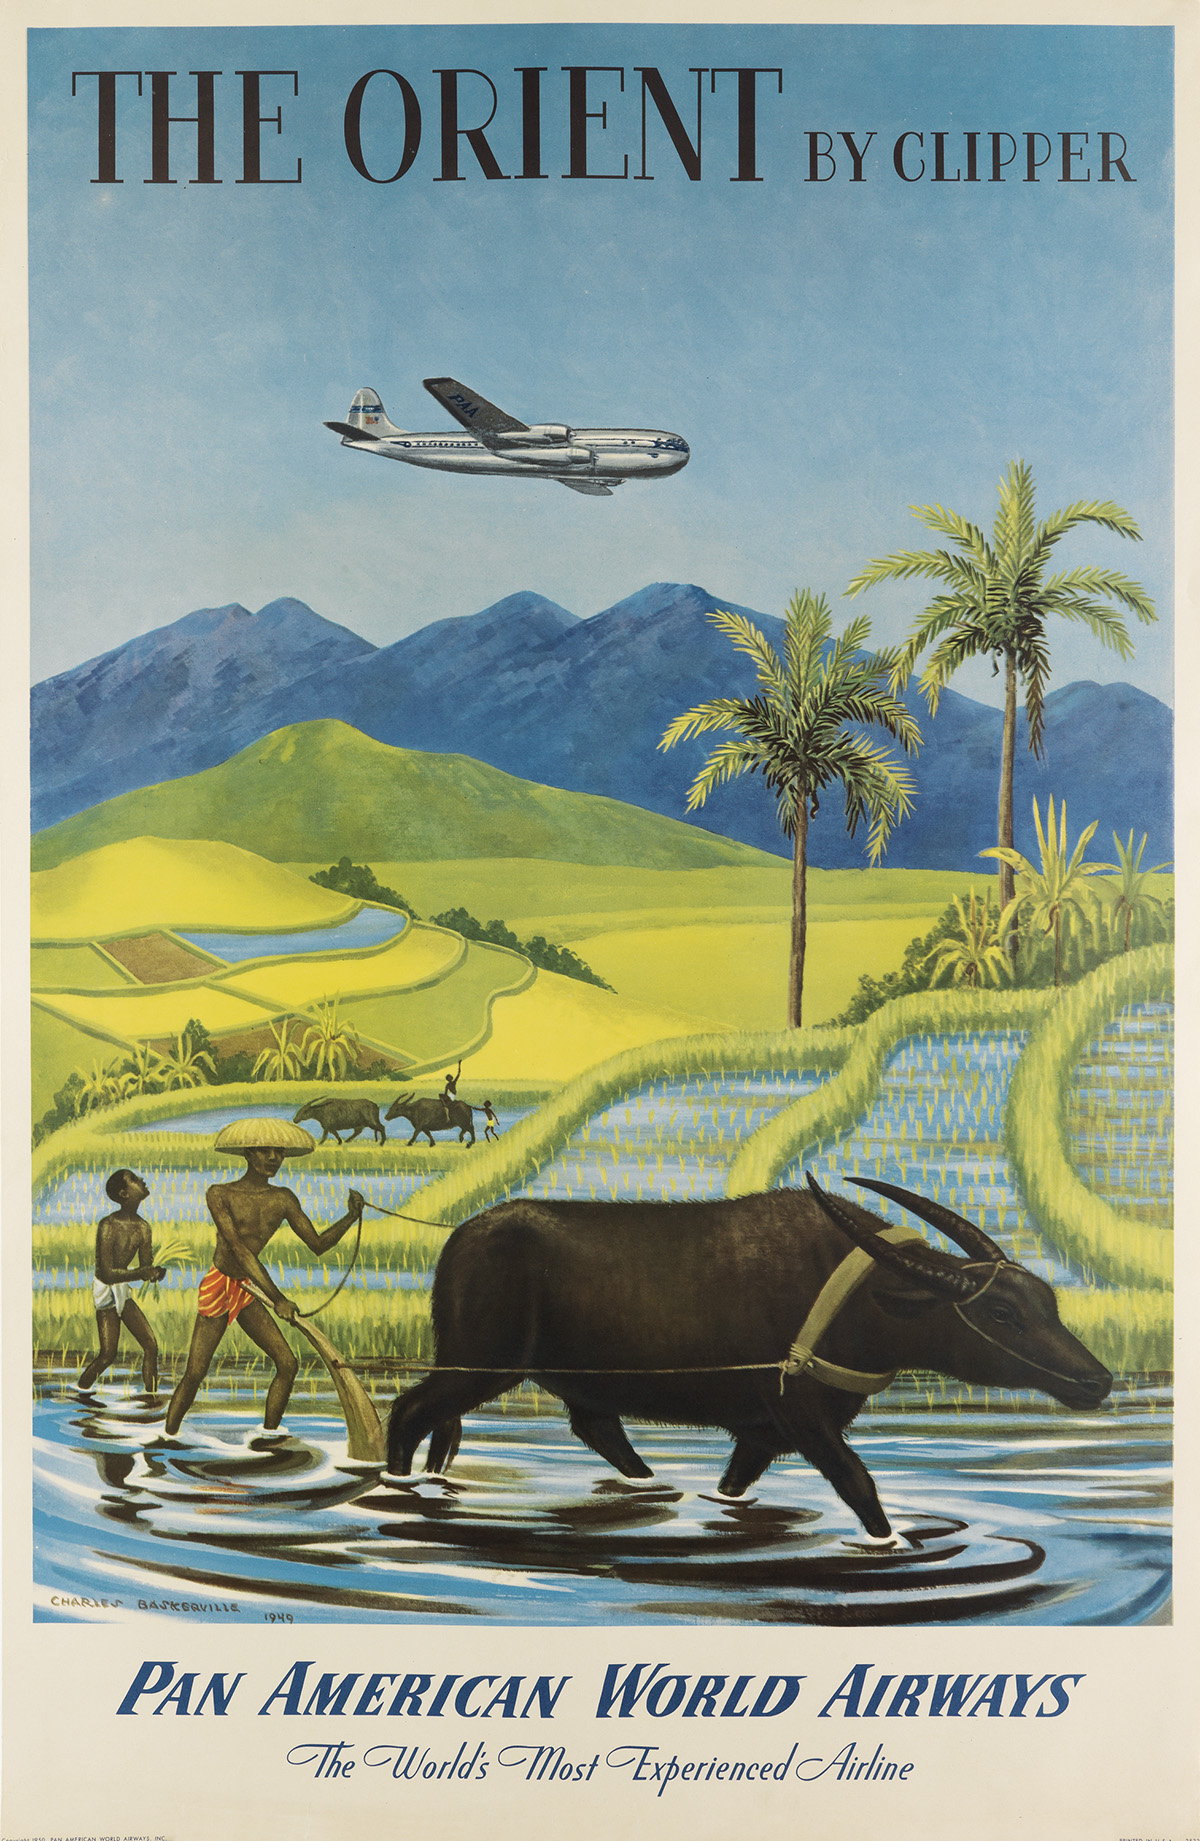 CHARLES-BASKERVILLE-(1896-1994)-THE-ORIENT-BY-CLIPPER--PAN-A